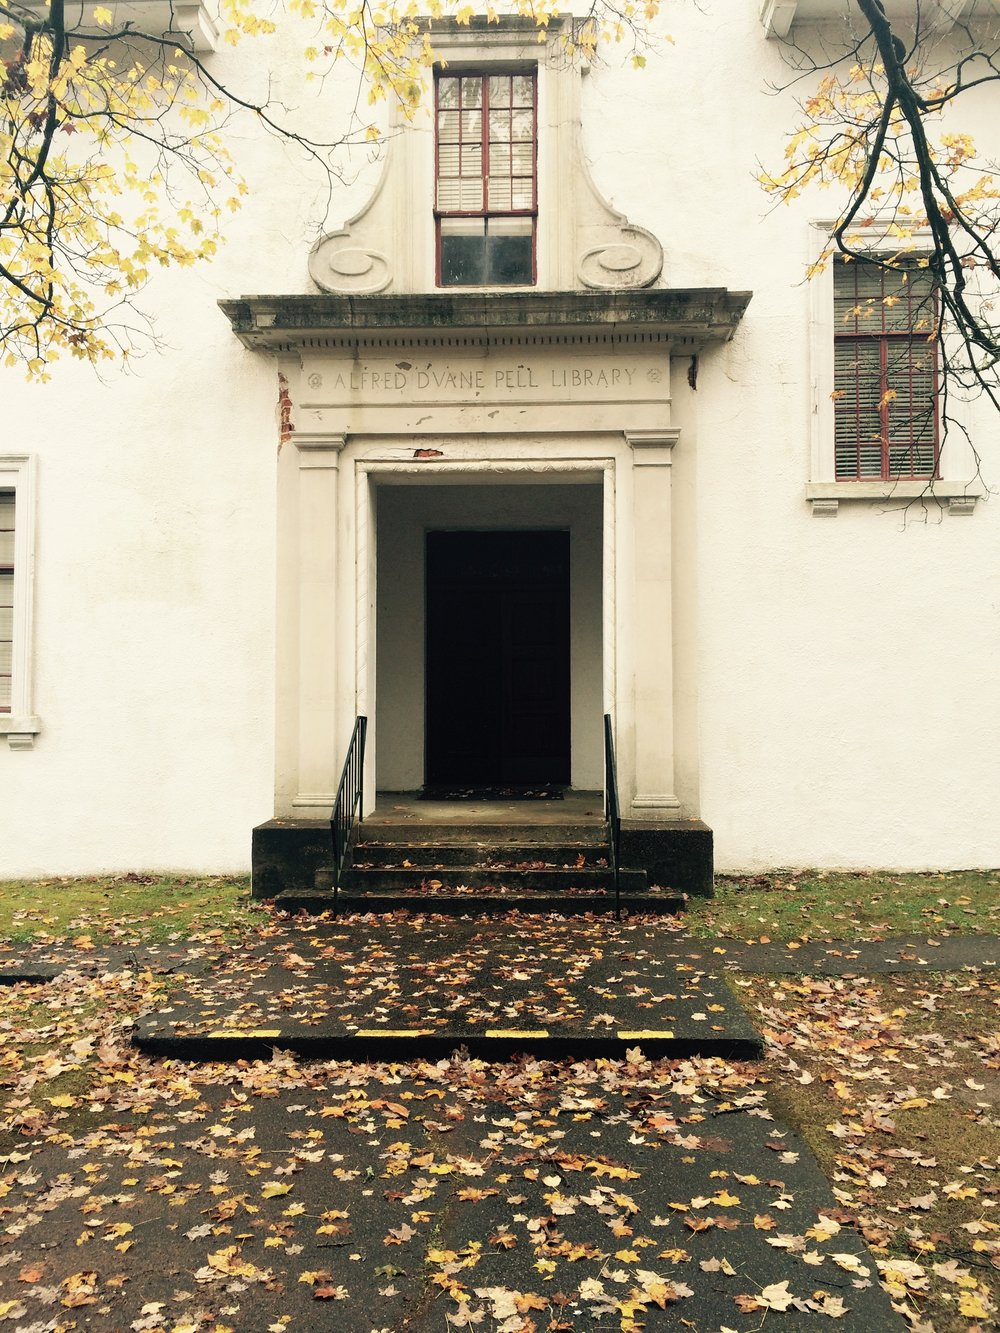 Entrance to Alfred Duane Pell Library Building in Autumn